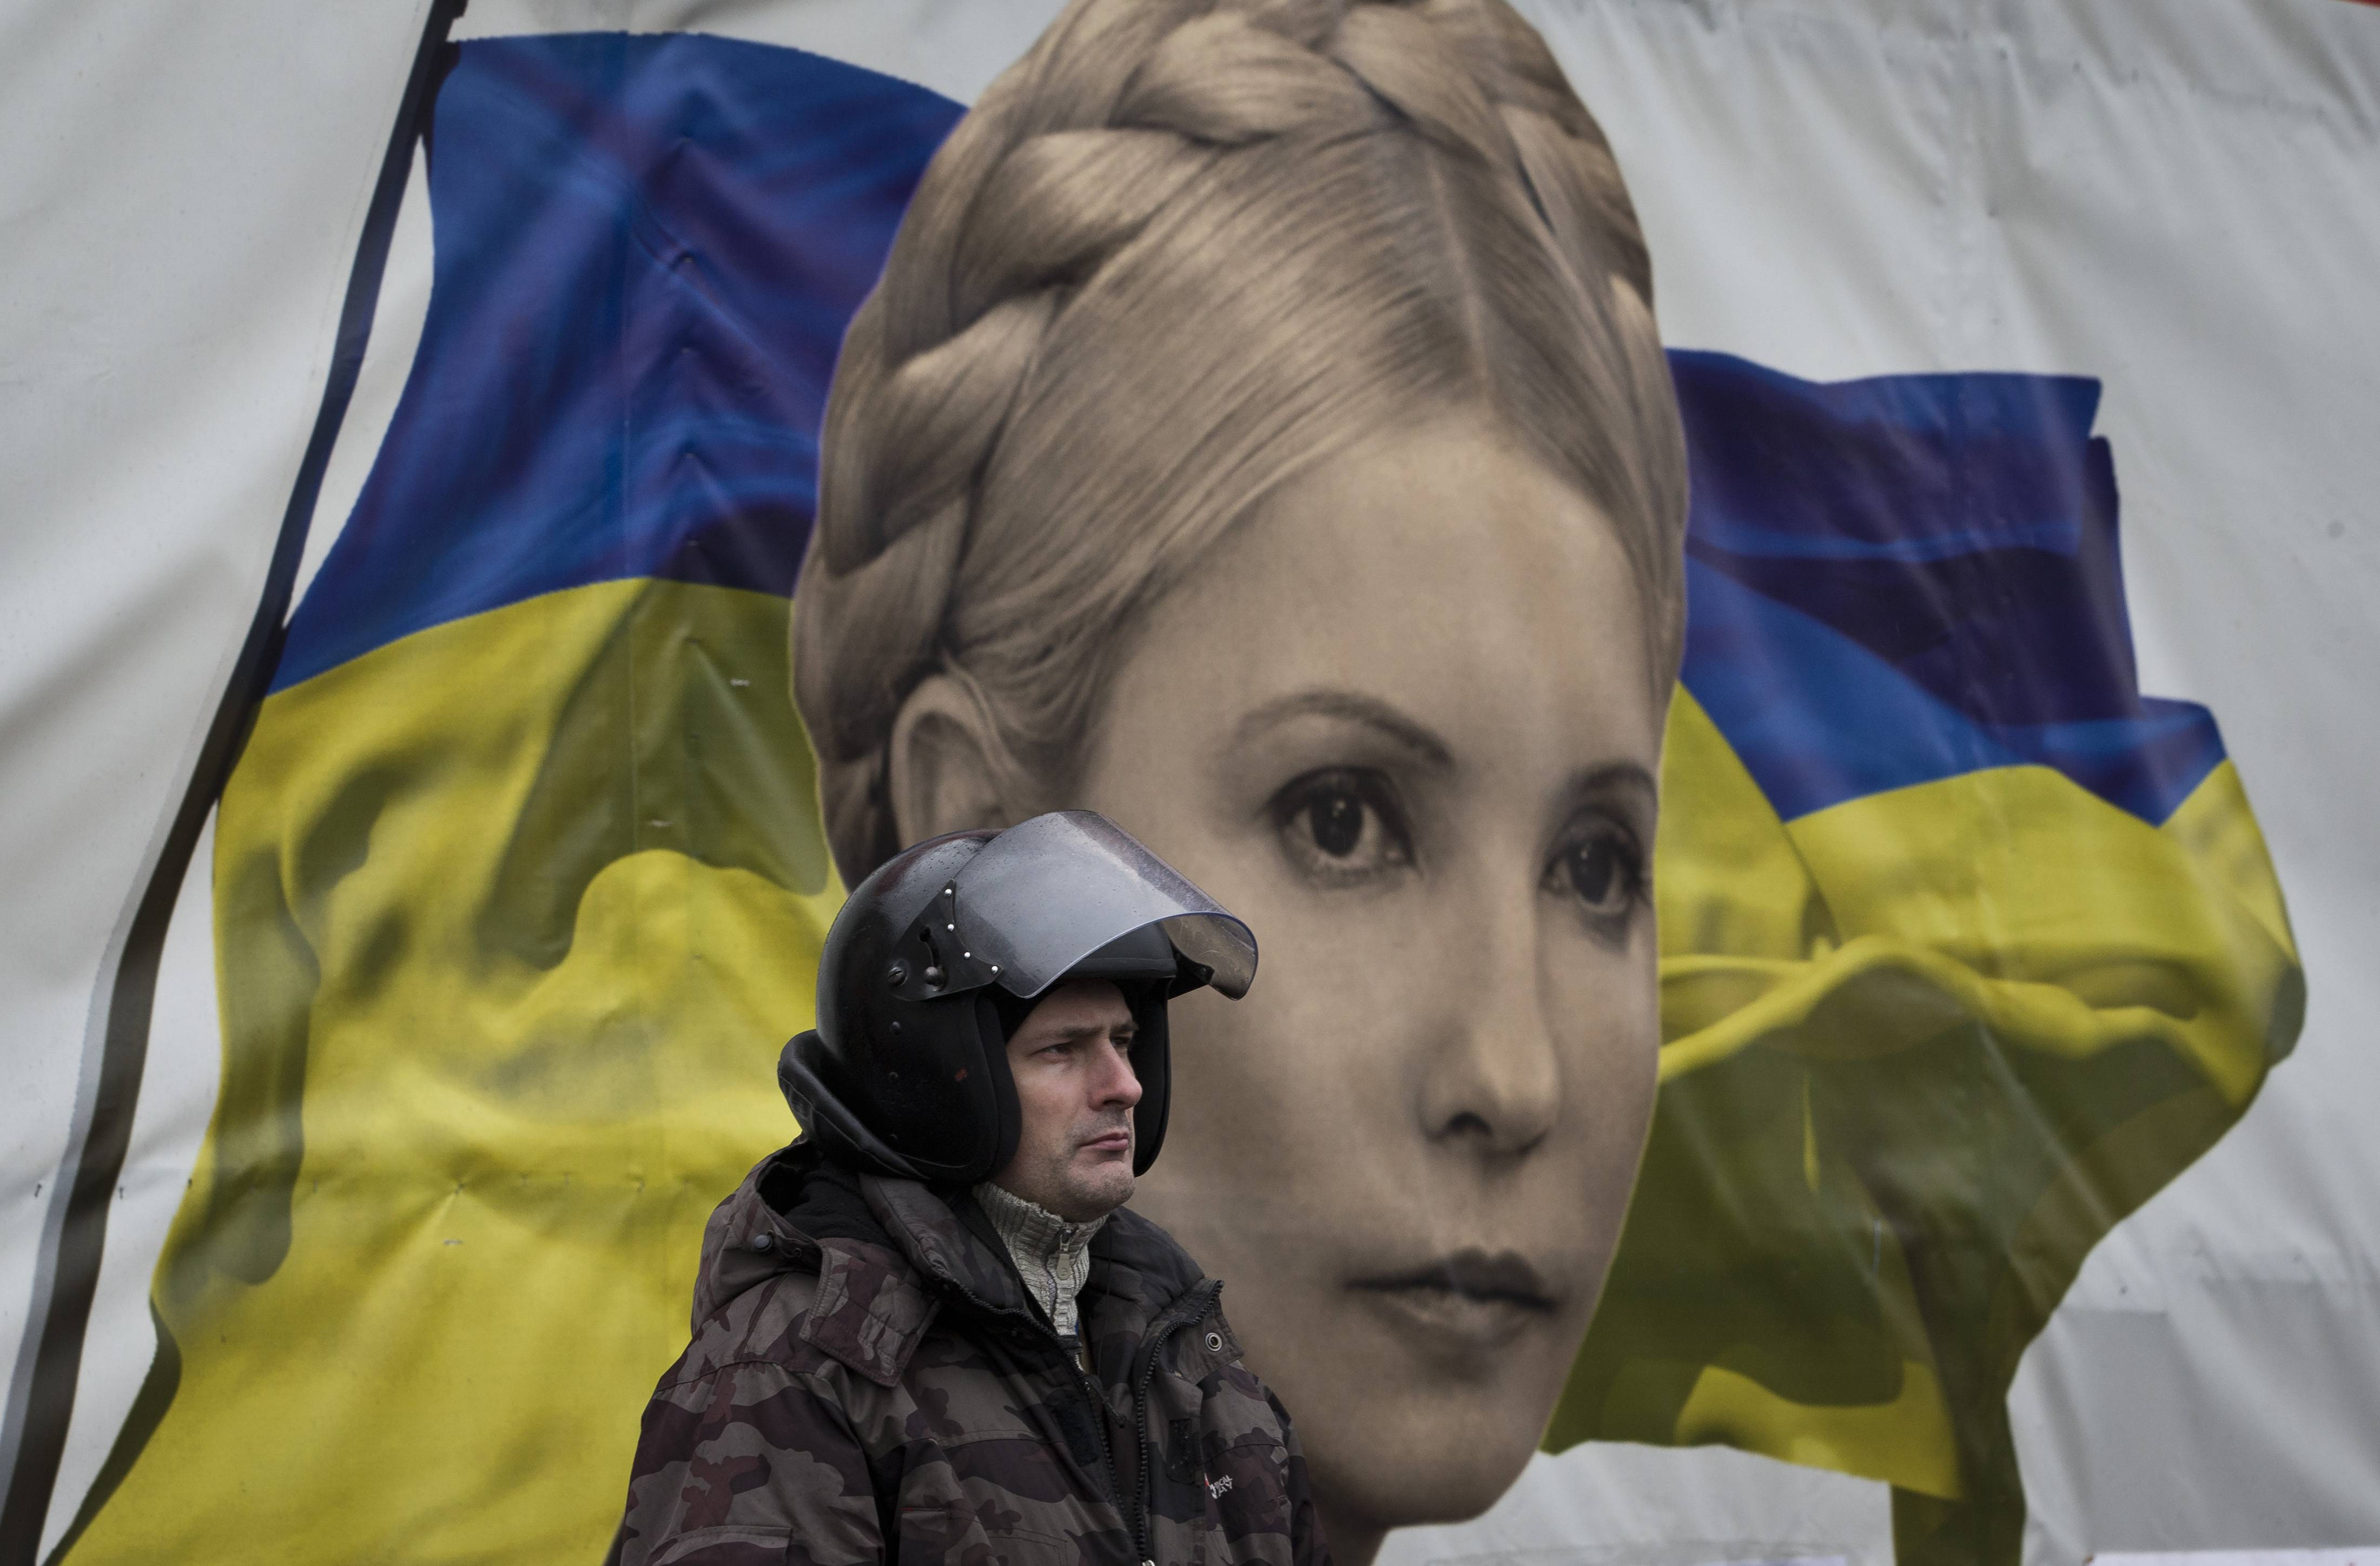 Report: Ukraine president tries to flee country